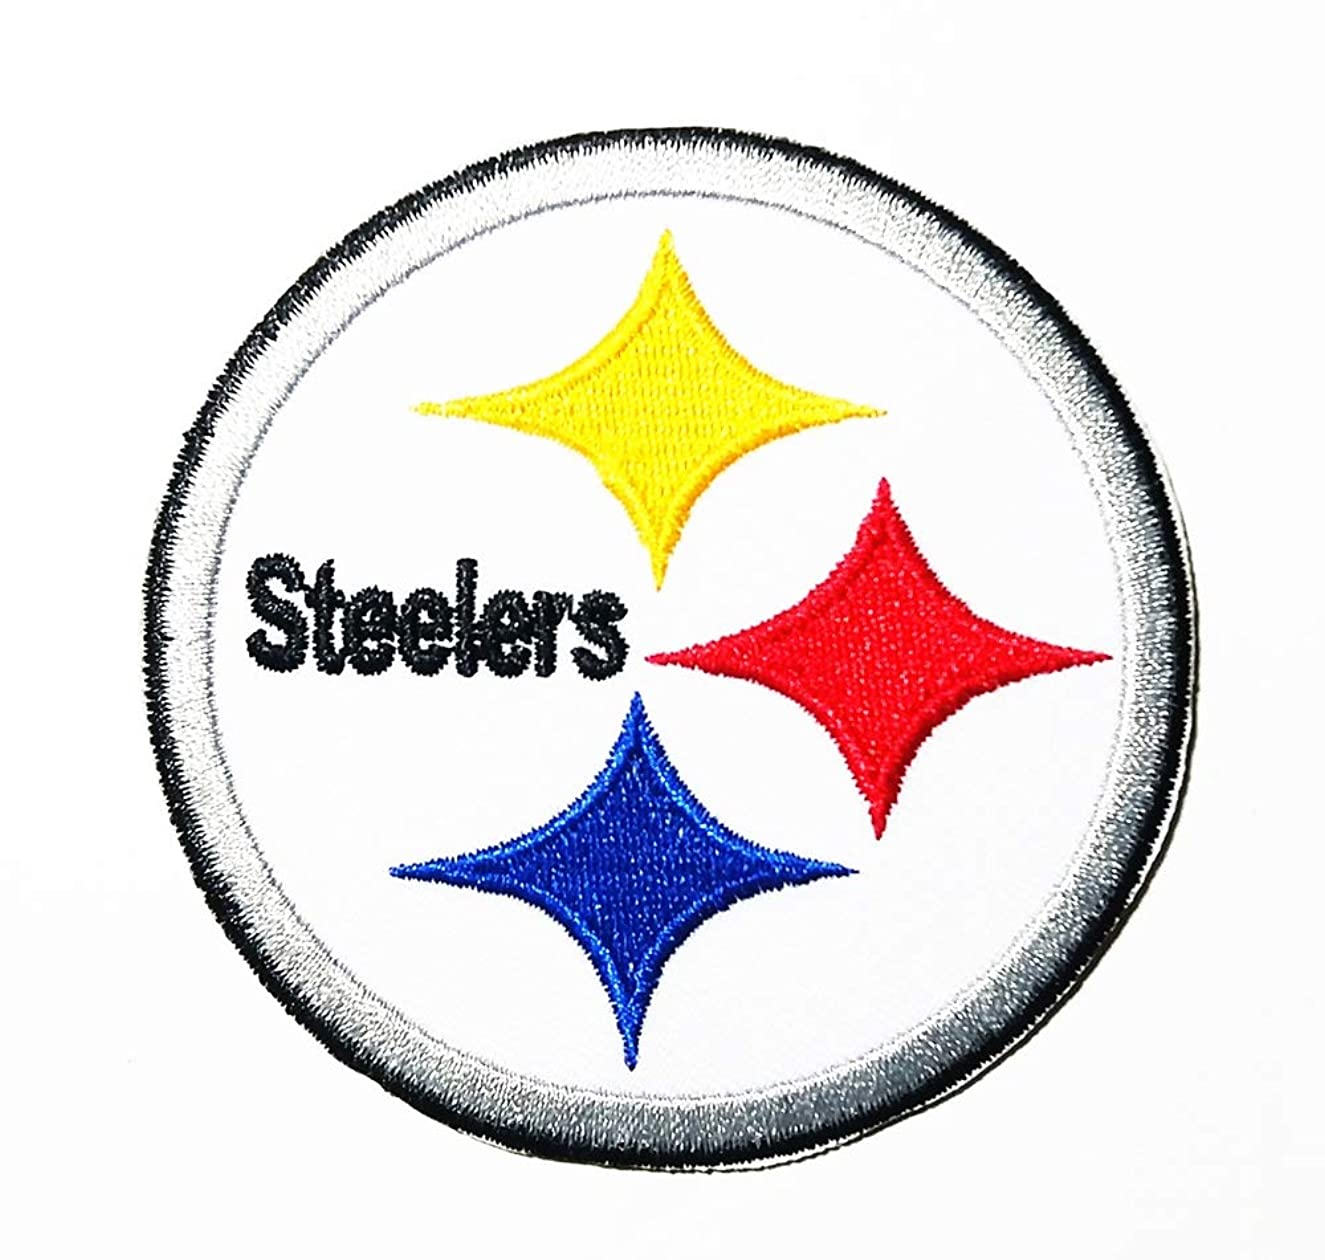 Team Sport American Football NFL Logo Patch Embroidered Sew Iron On Patches Badge Bags Hat Jeans Shoes T-Shirt Applique